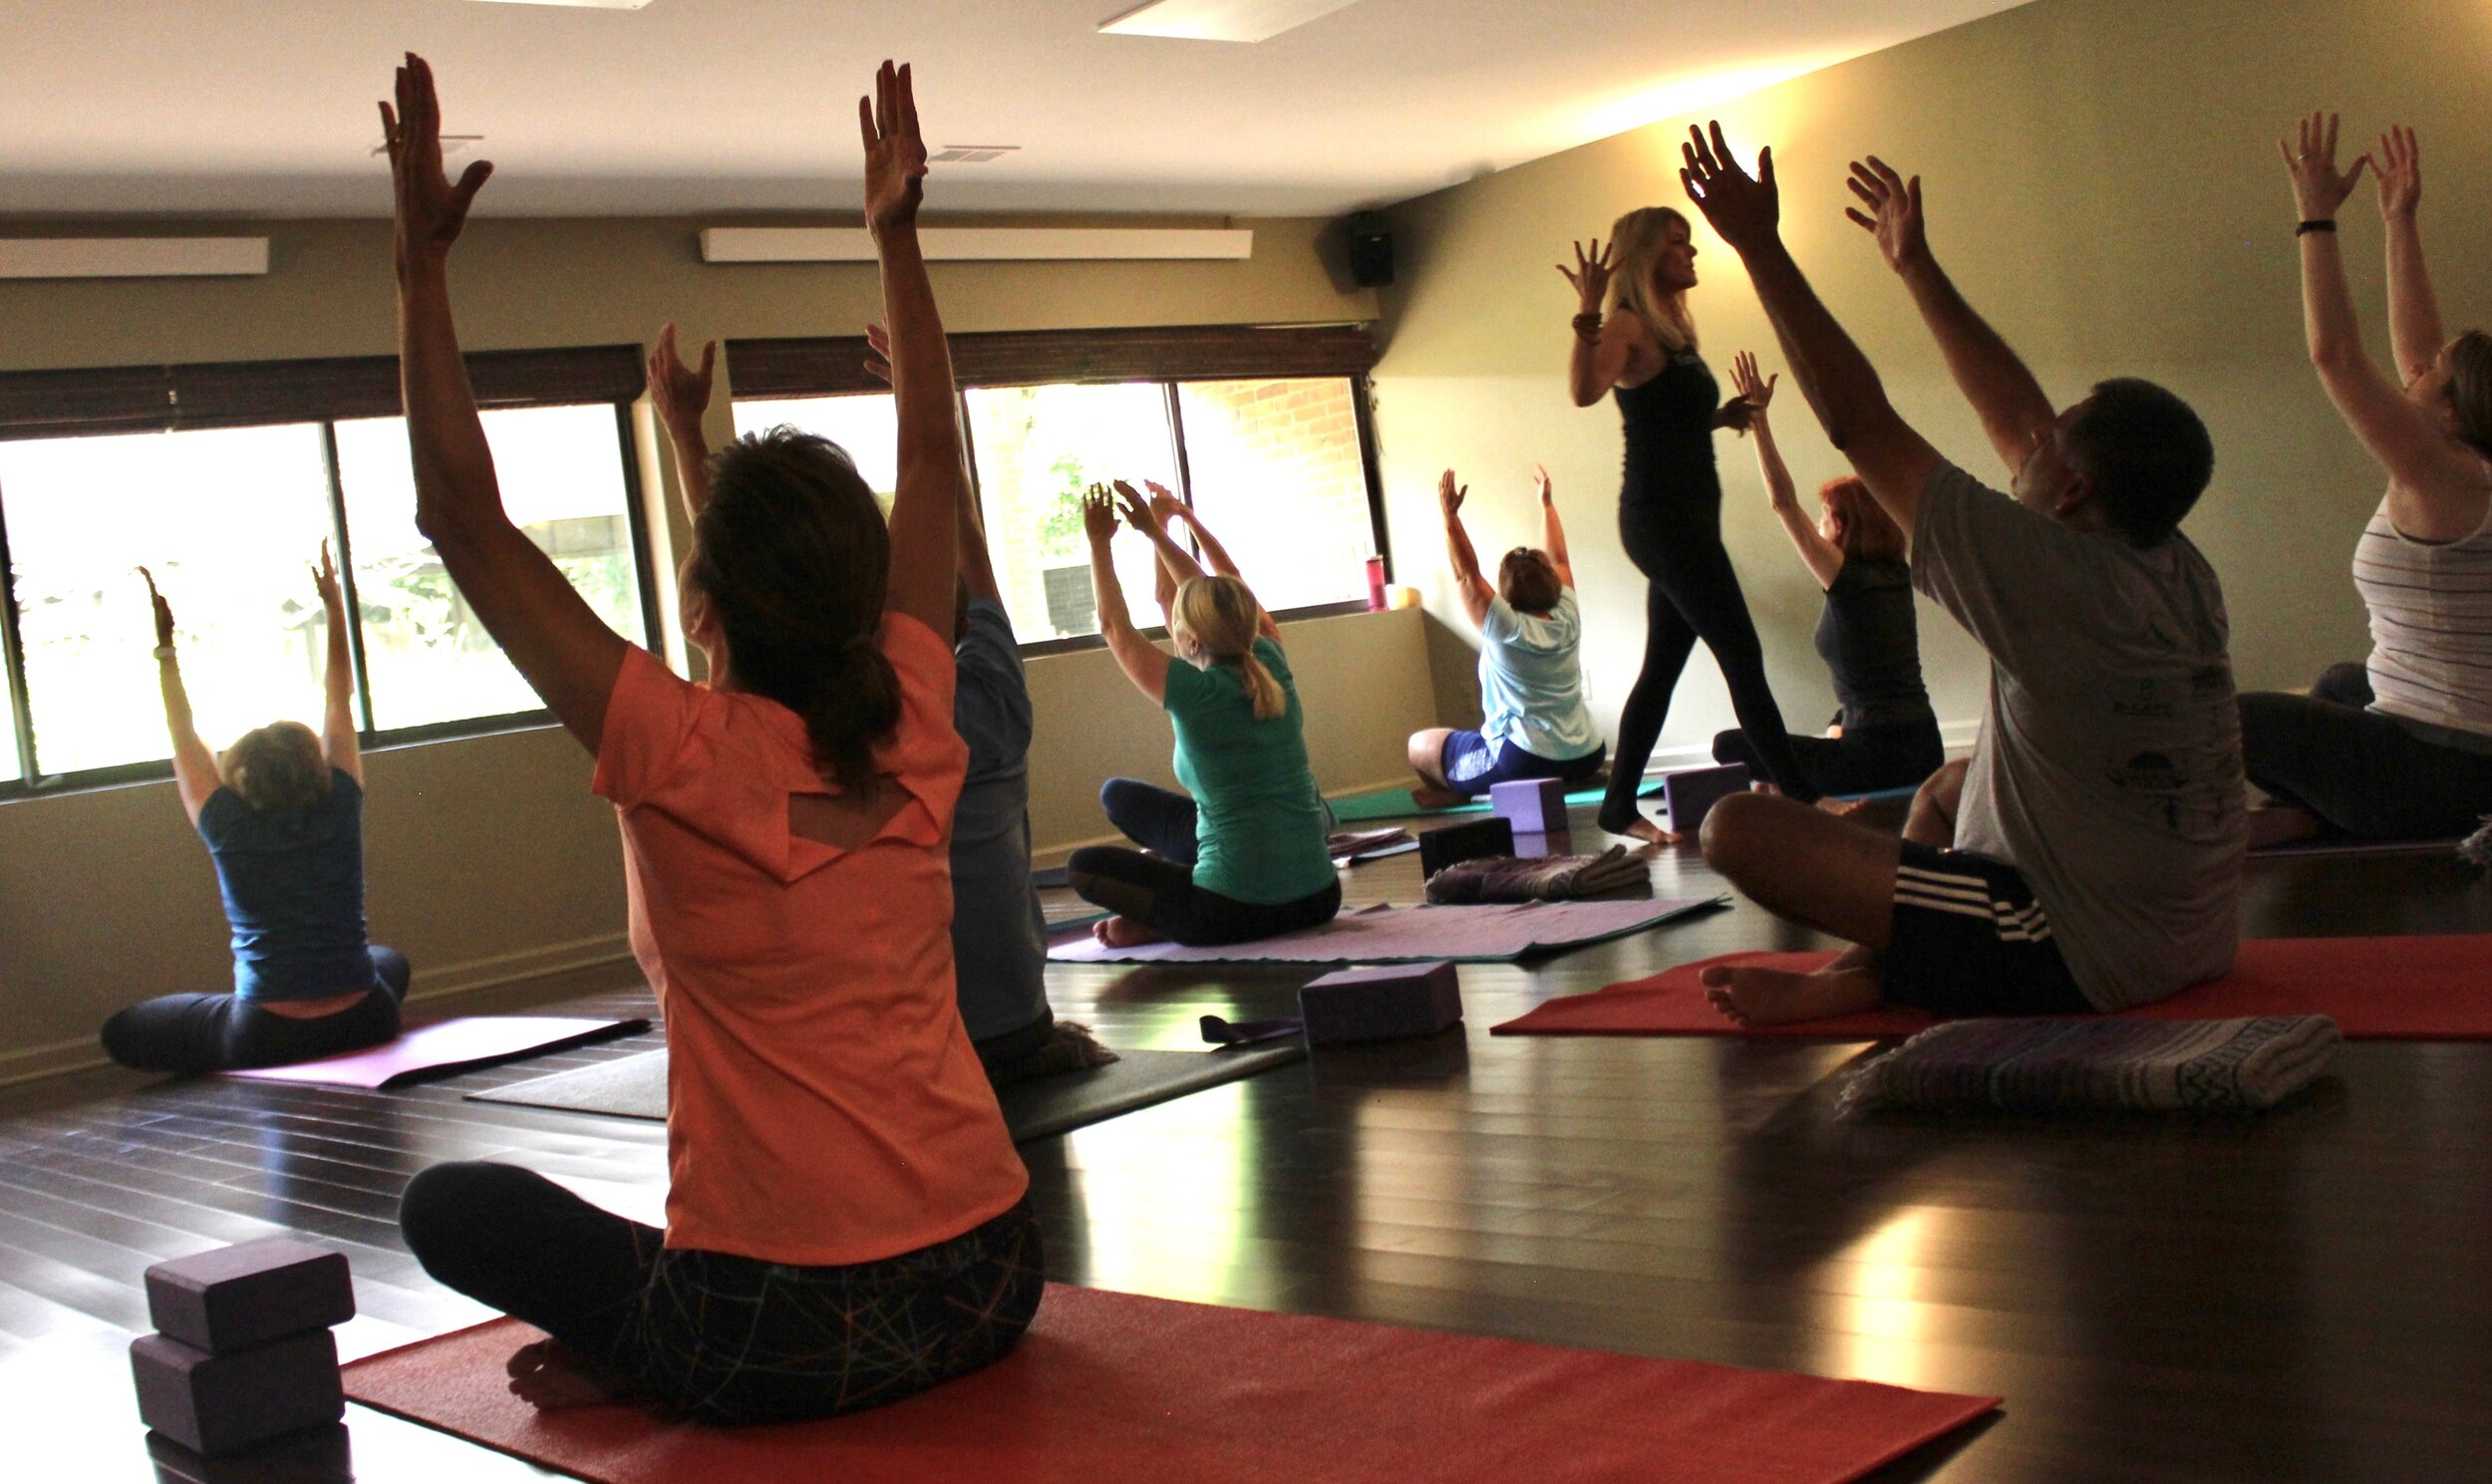 Cool Flow - Cool Flow is an ideal way to create a strong yoga foundation. This room temperature class is fully guided, non-heated and will teach you all the yoga basics. Its perfect for students who don't like a heated room, but enjoy a flowing practice. Cool Flow includes Sun Salutations, balancing, stretching and strengthening. This classes is accessible to most, and will leave you feeling strong, calm and focused.